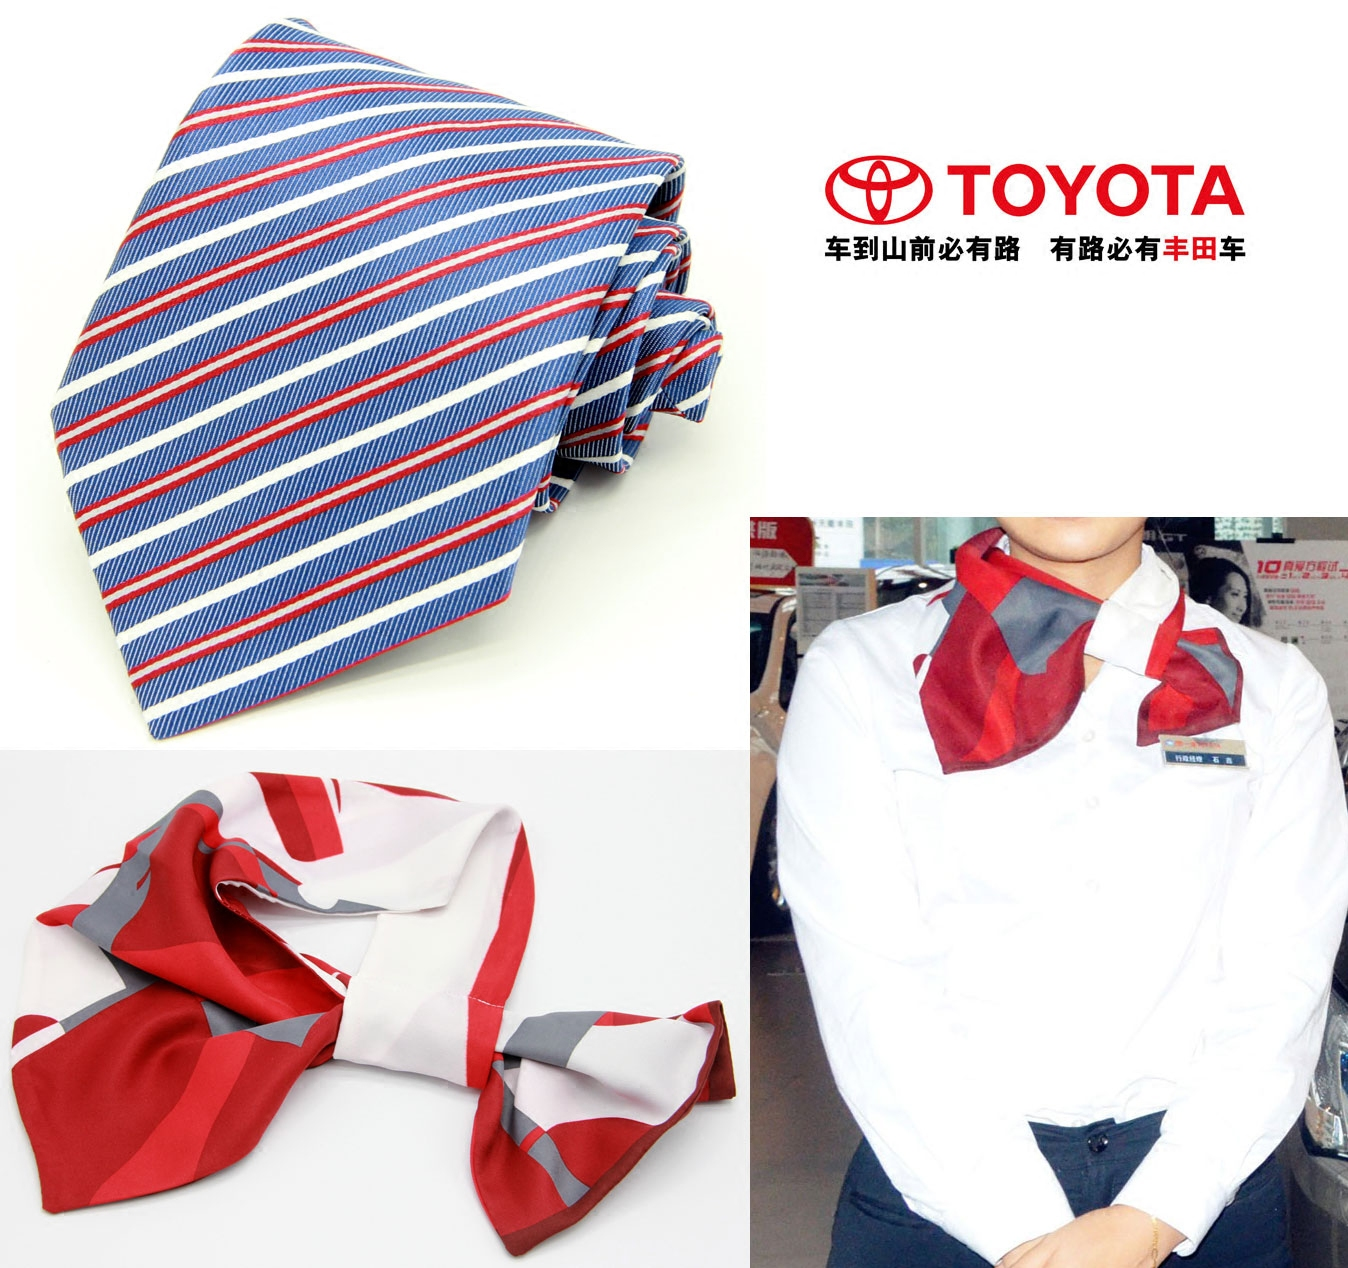 3 free shipping guangqi toyota faw toyota 4s shop for men tie scarves ms. purple tie